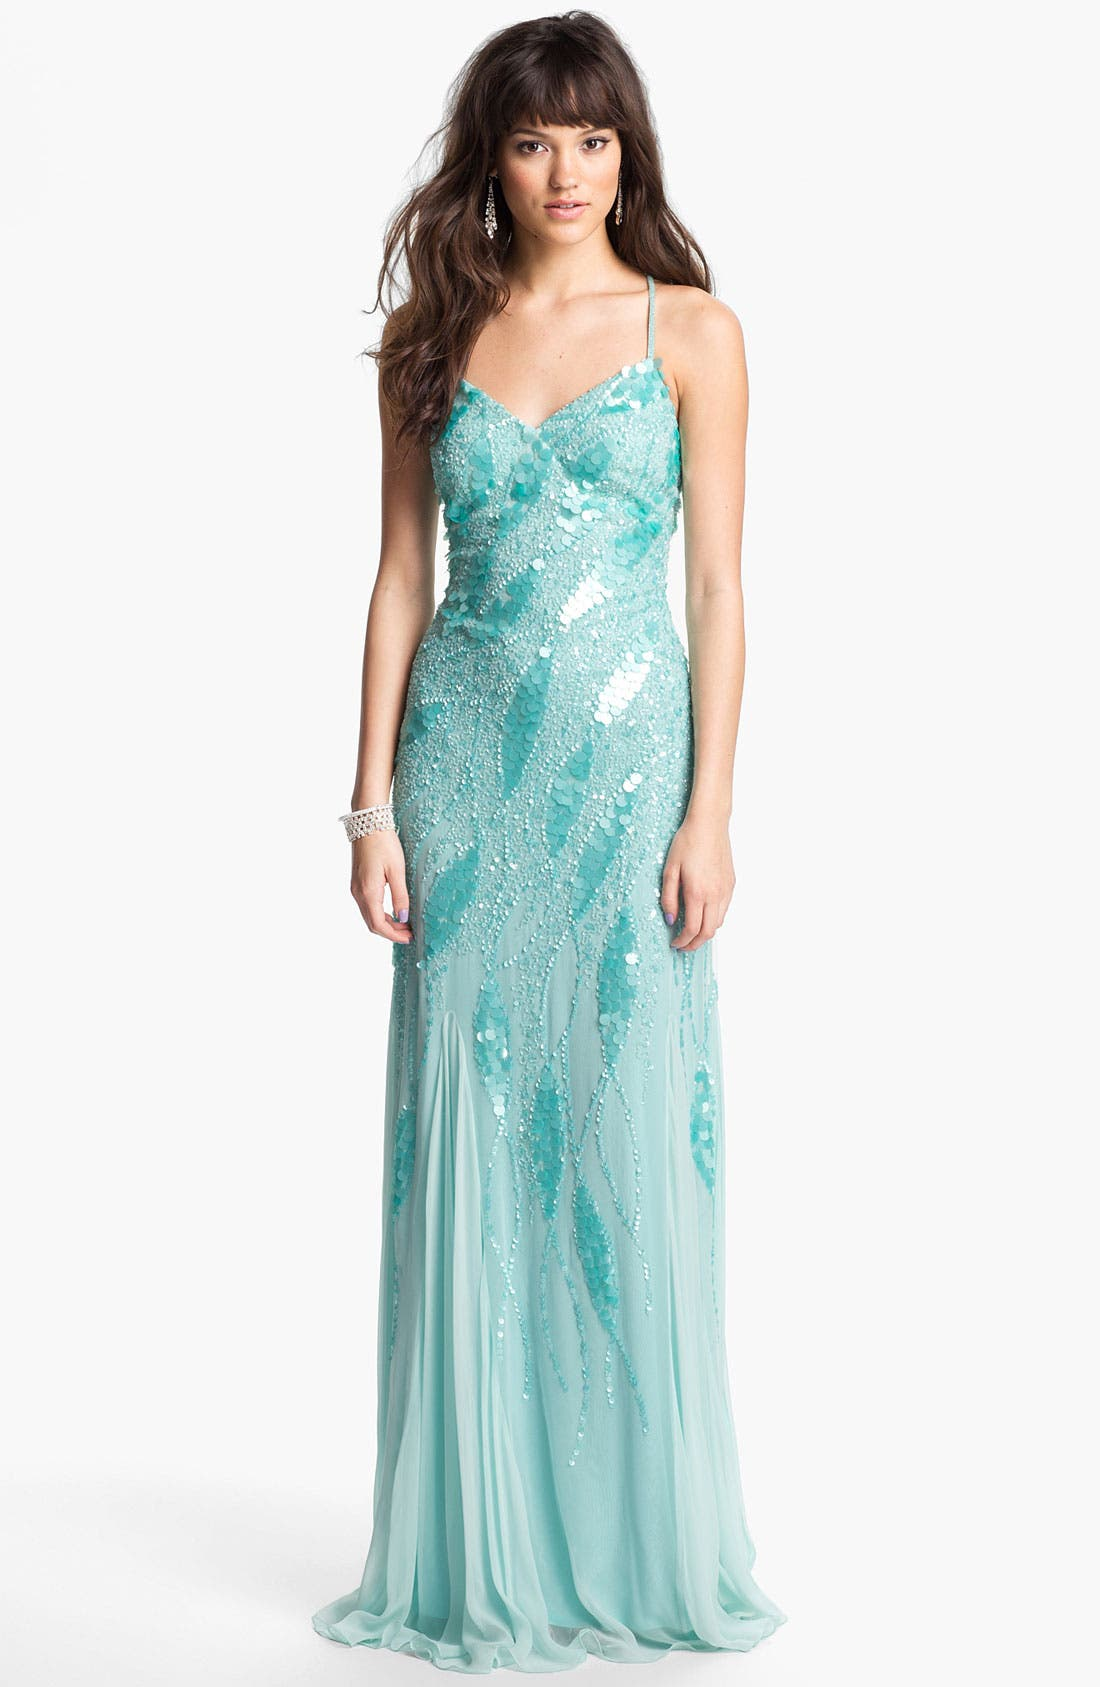 Alternate Image 1 Selected - Faviana Embellished Chiffon Gown (Online Only)